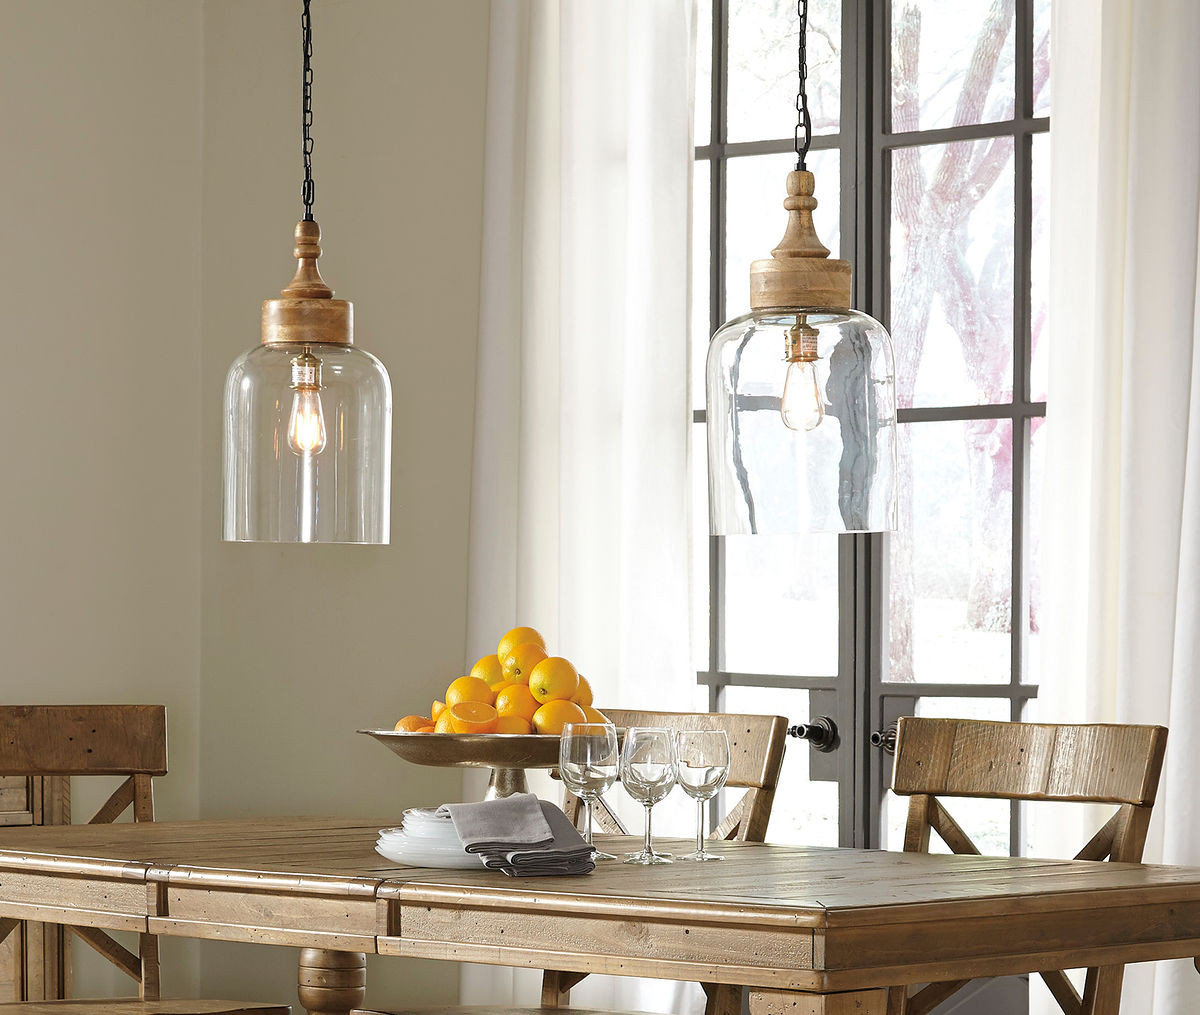 The Faiz Transparent Glass Pendant Light Sold At Spokane Furniture